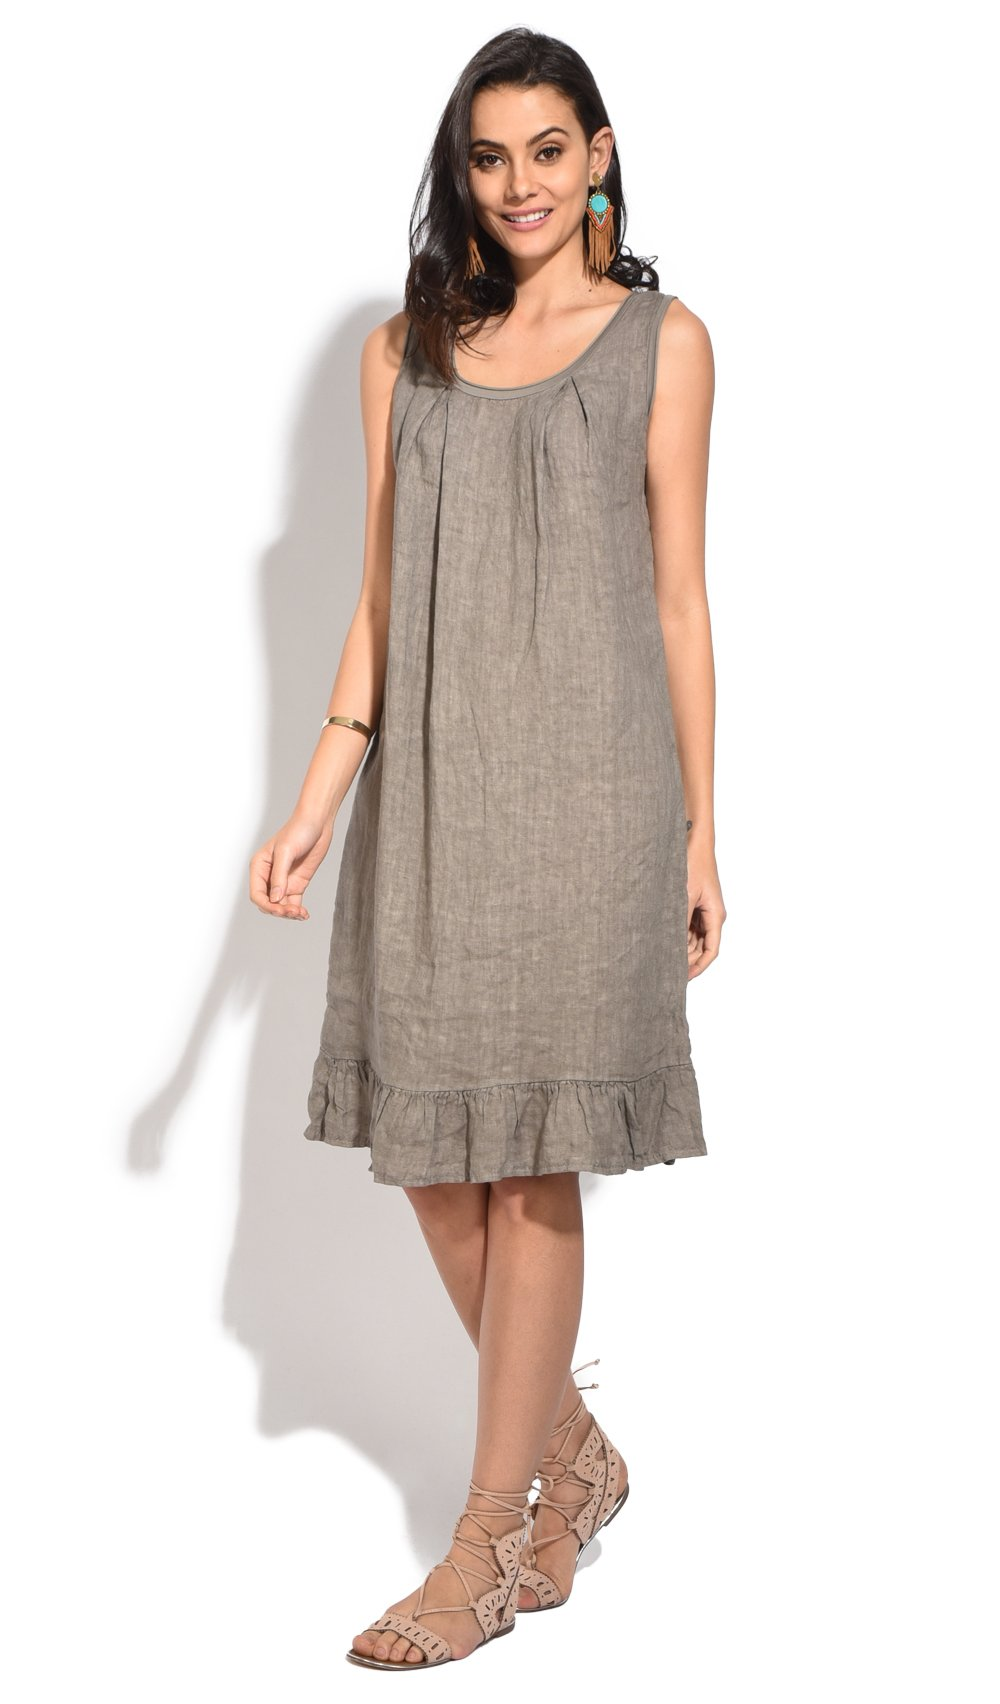 MID-LENGHT RUFFLED DRESS WITH ROUND COLLAR AND FRONT PLEATS